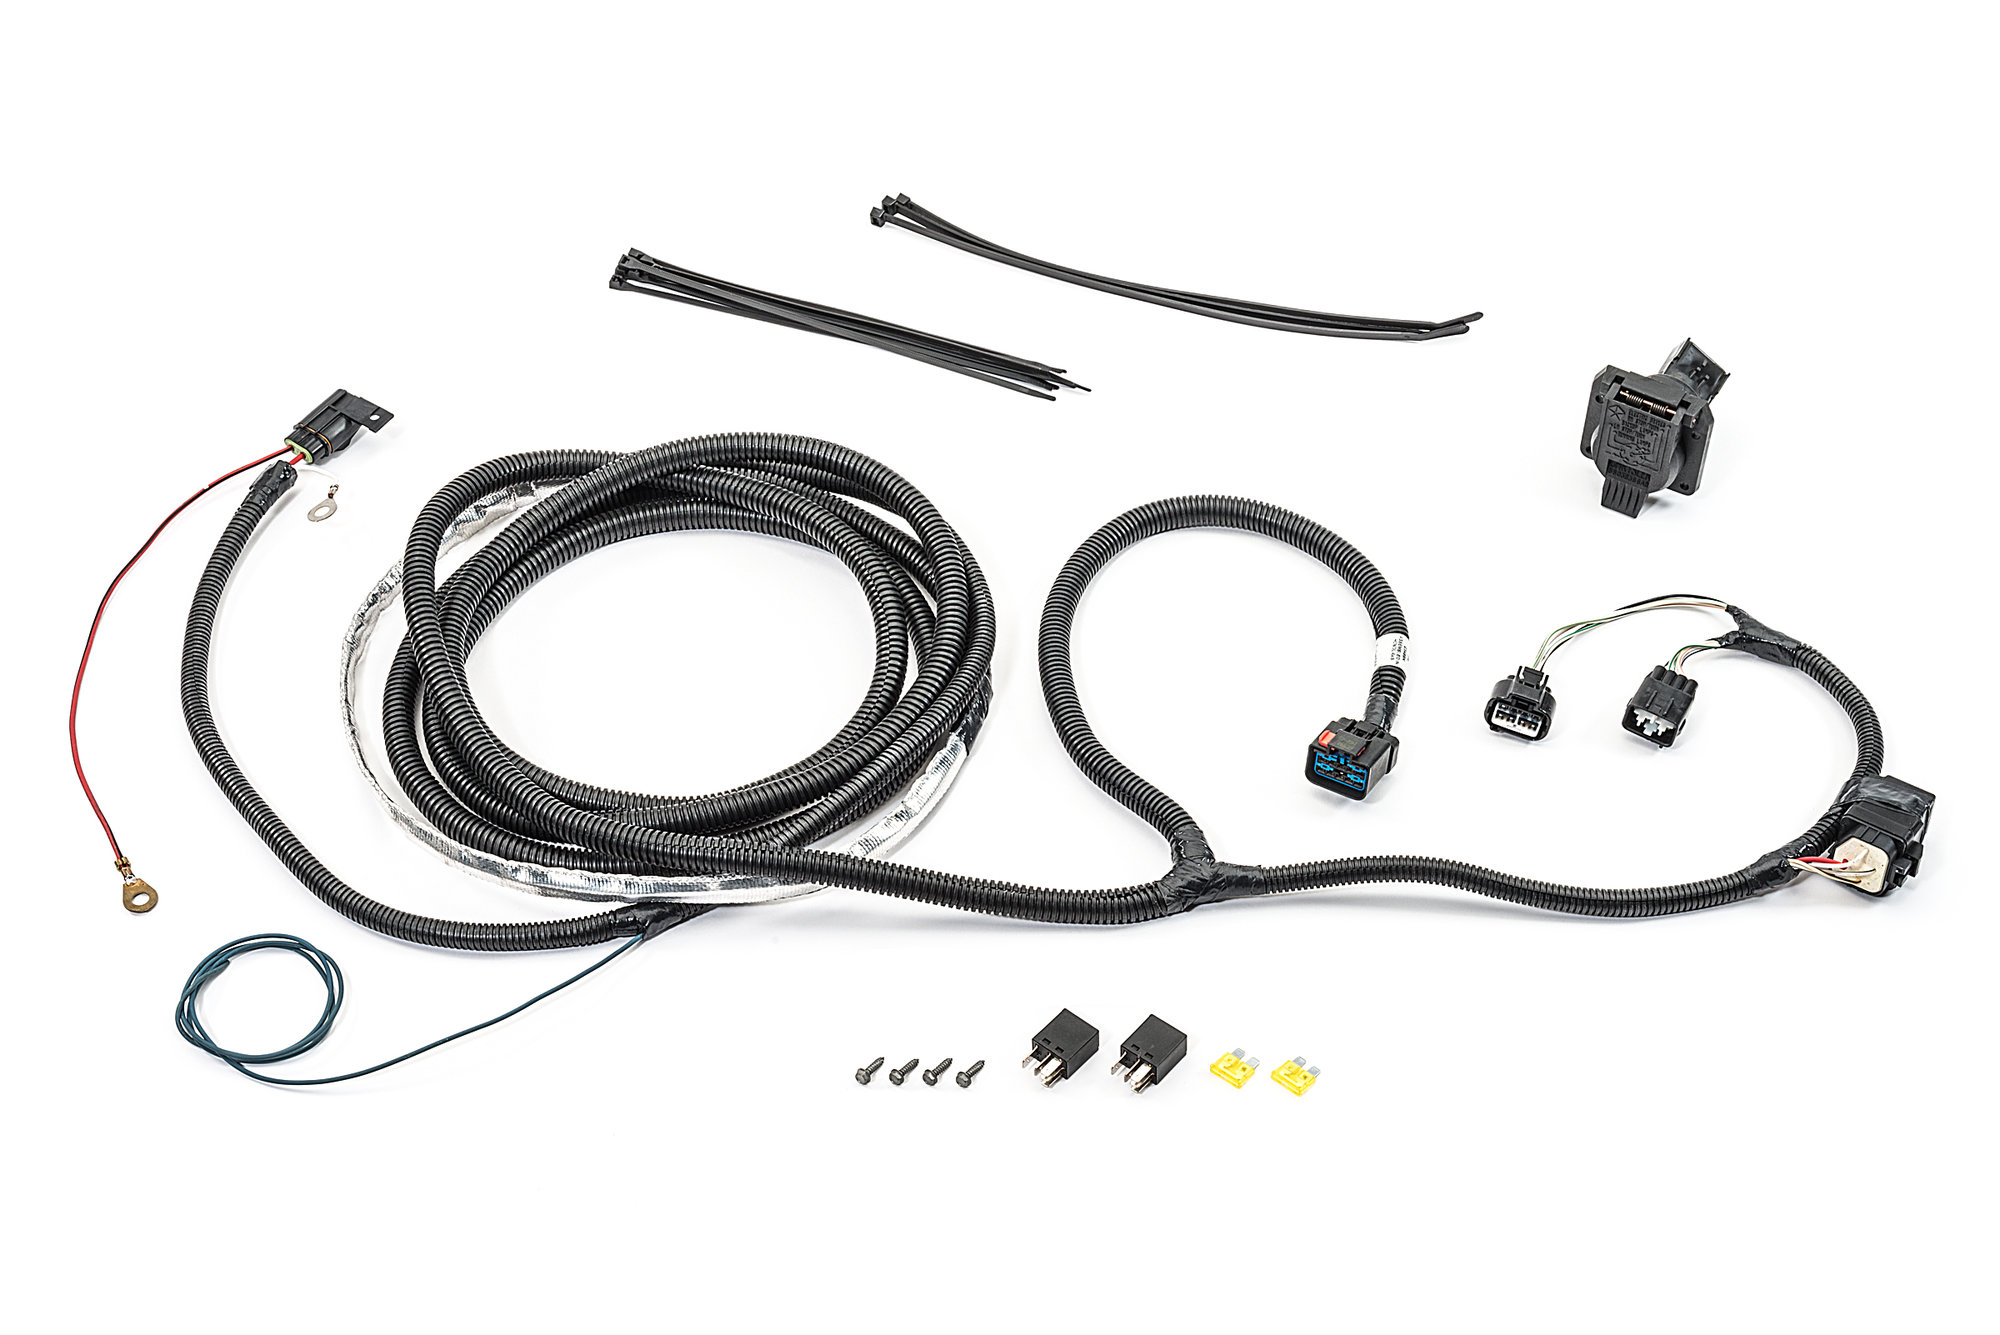 2001 jeep grand cherokee headlight wiring harness